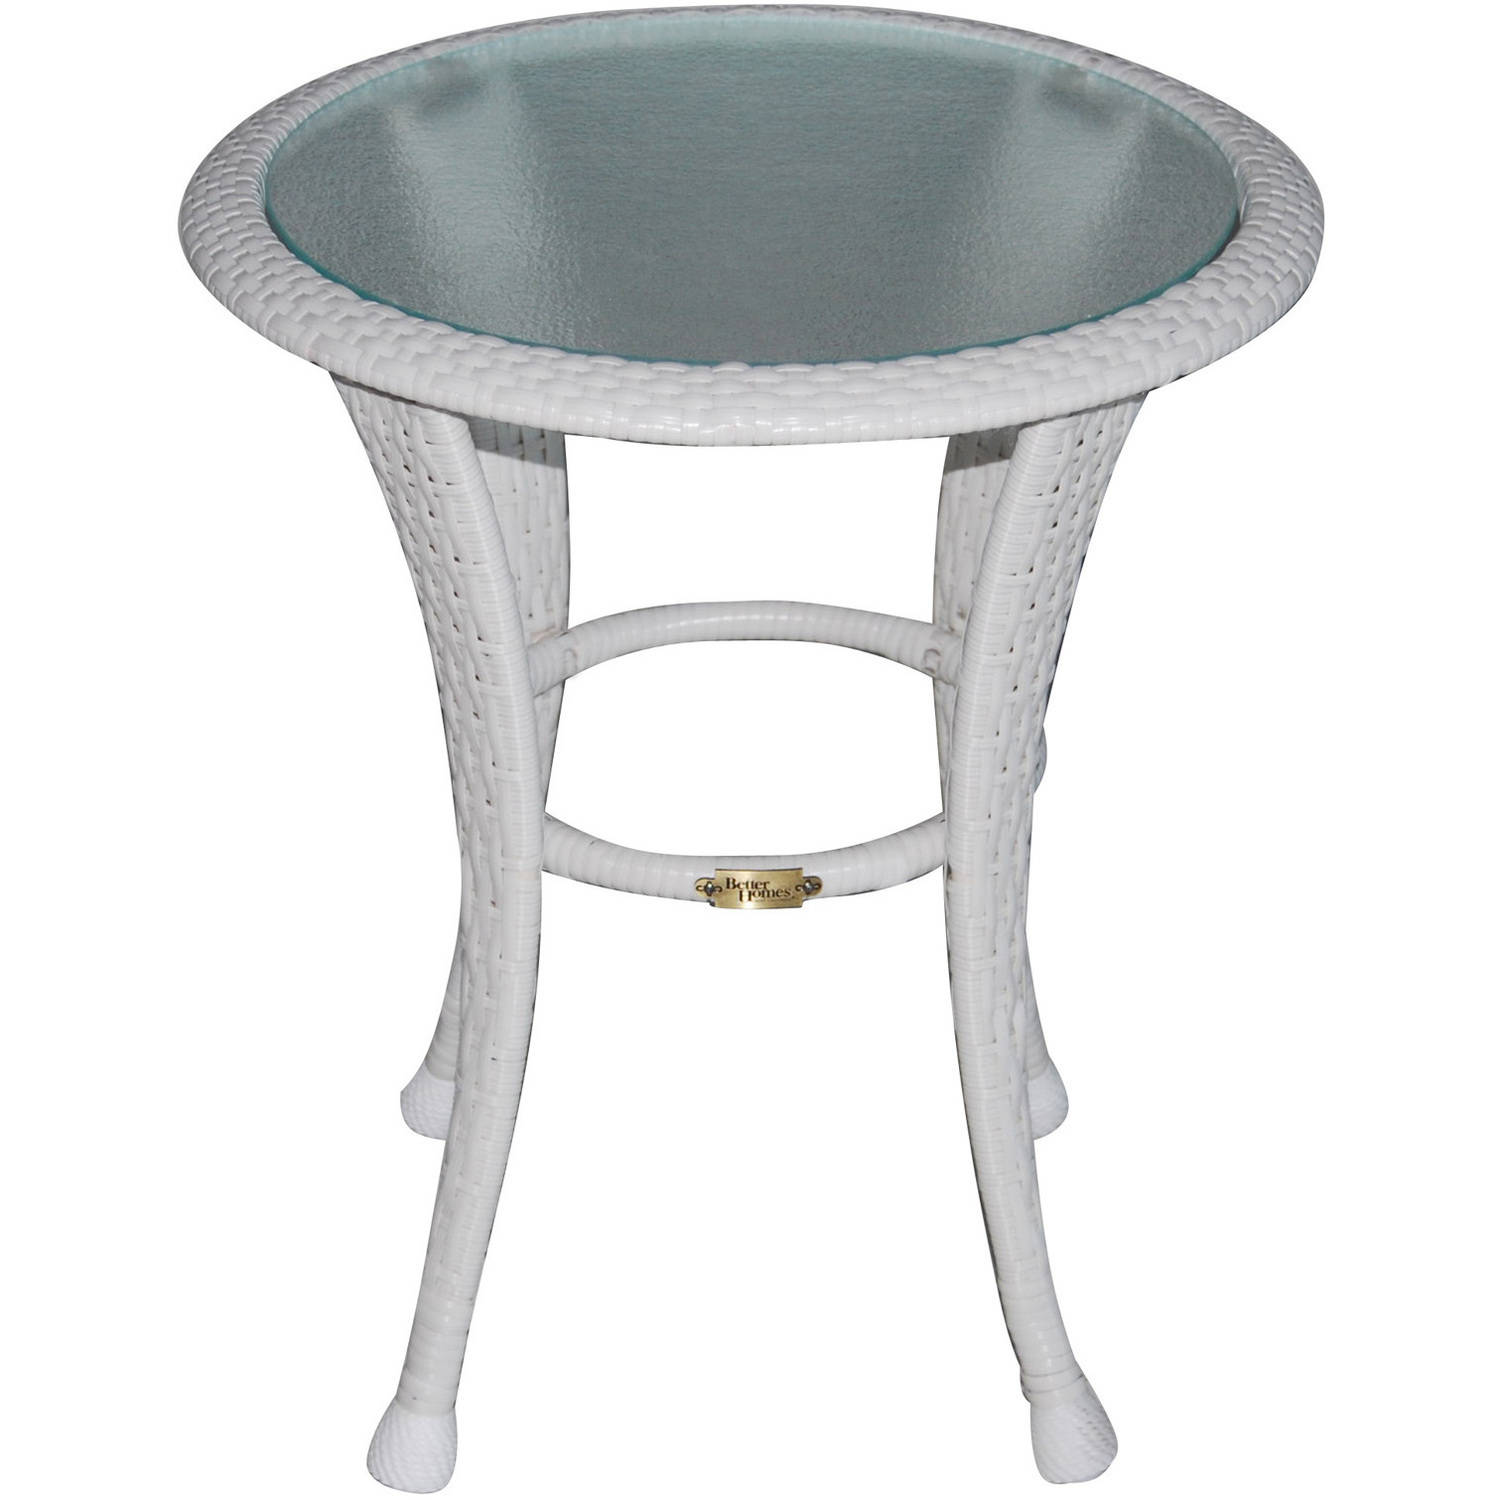 better homes and gardens azalea ridge round outdoor side table grey black white accent chair turquoise pieces antique drum gold desk lamp kohls bedspreads unfinished dining legs